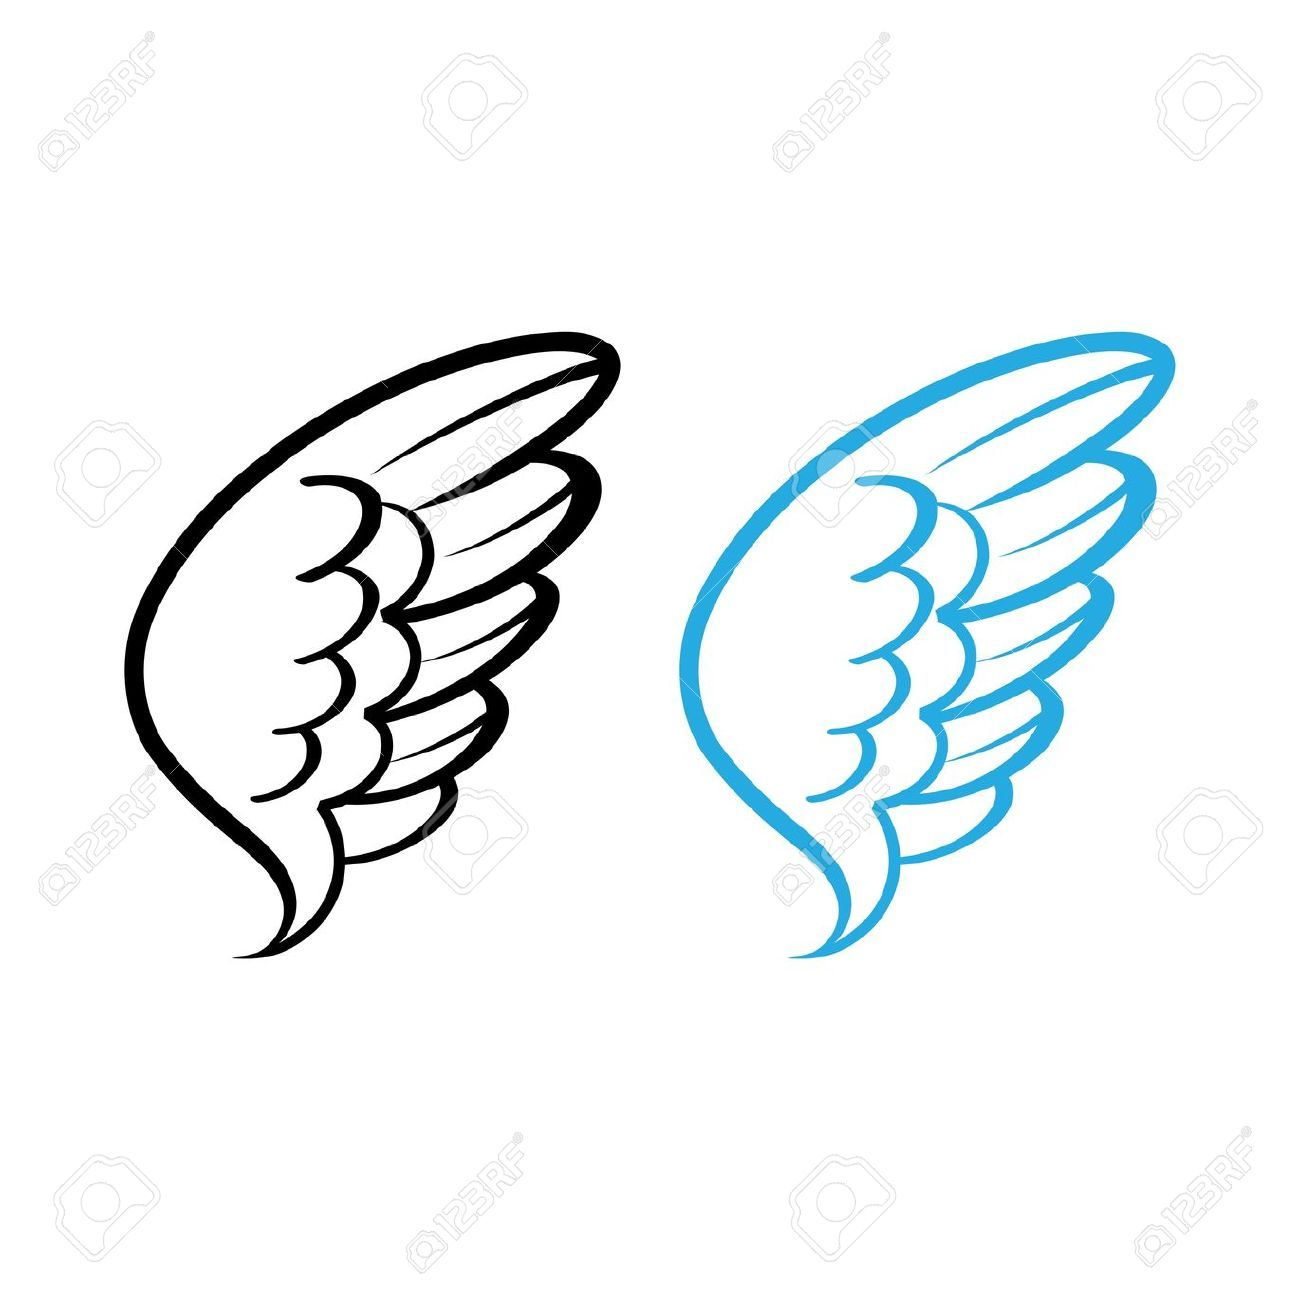 simple illustration of angels.